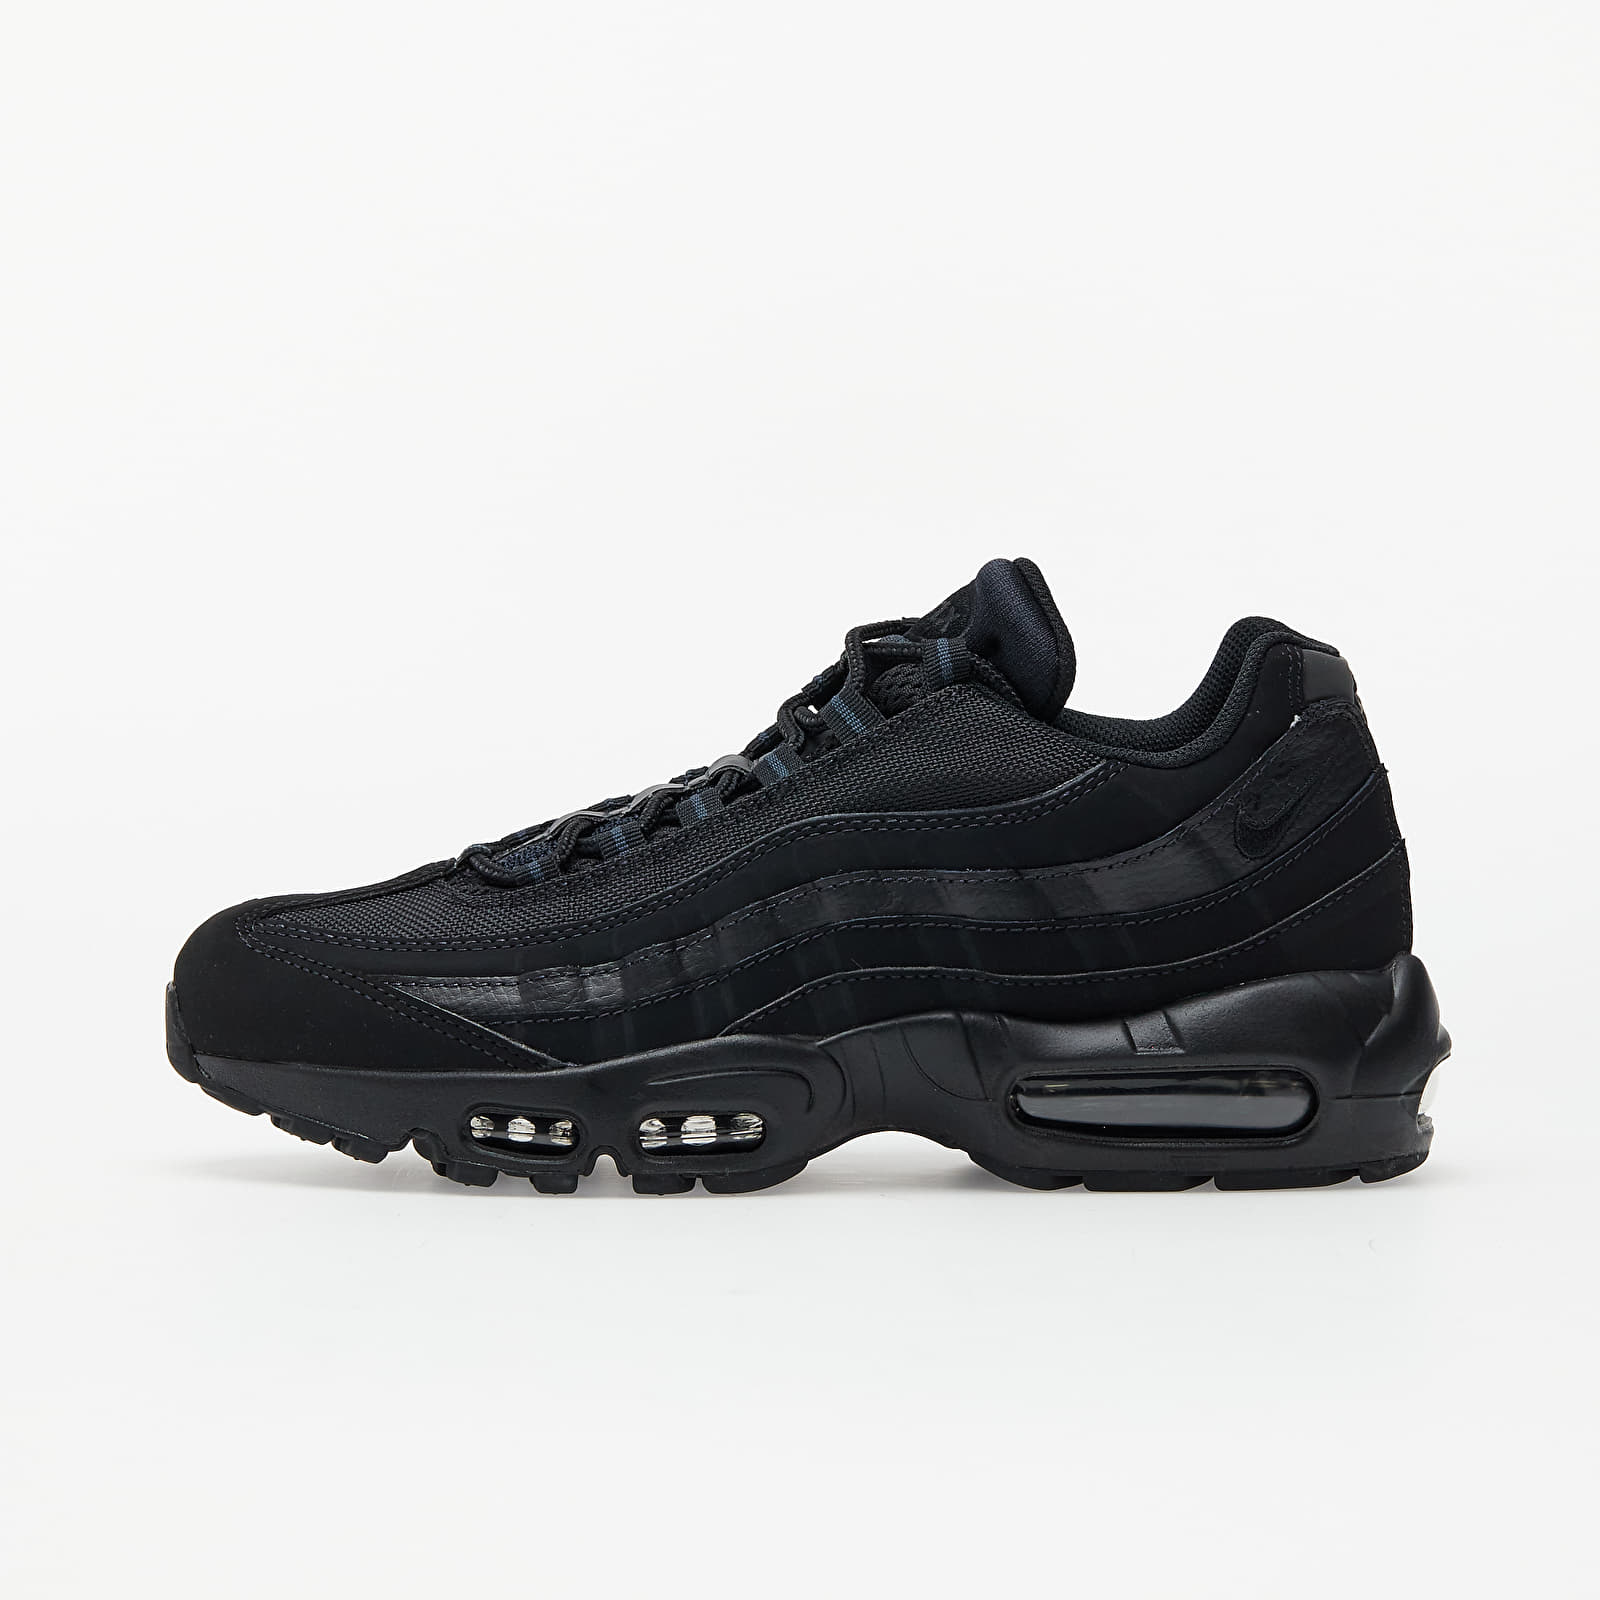 Nike Air Max 95 Black/ Black-Anthracite EUR 42